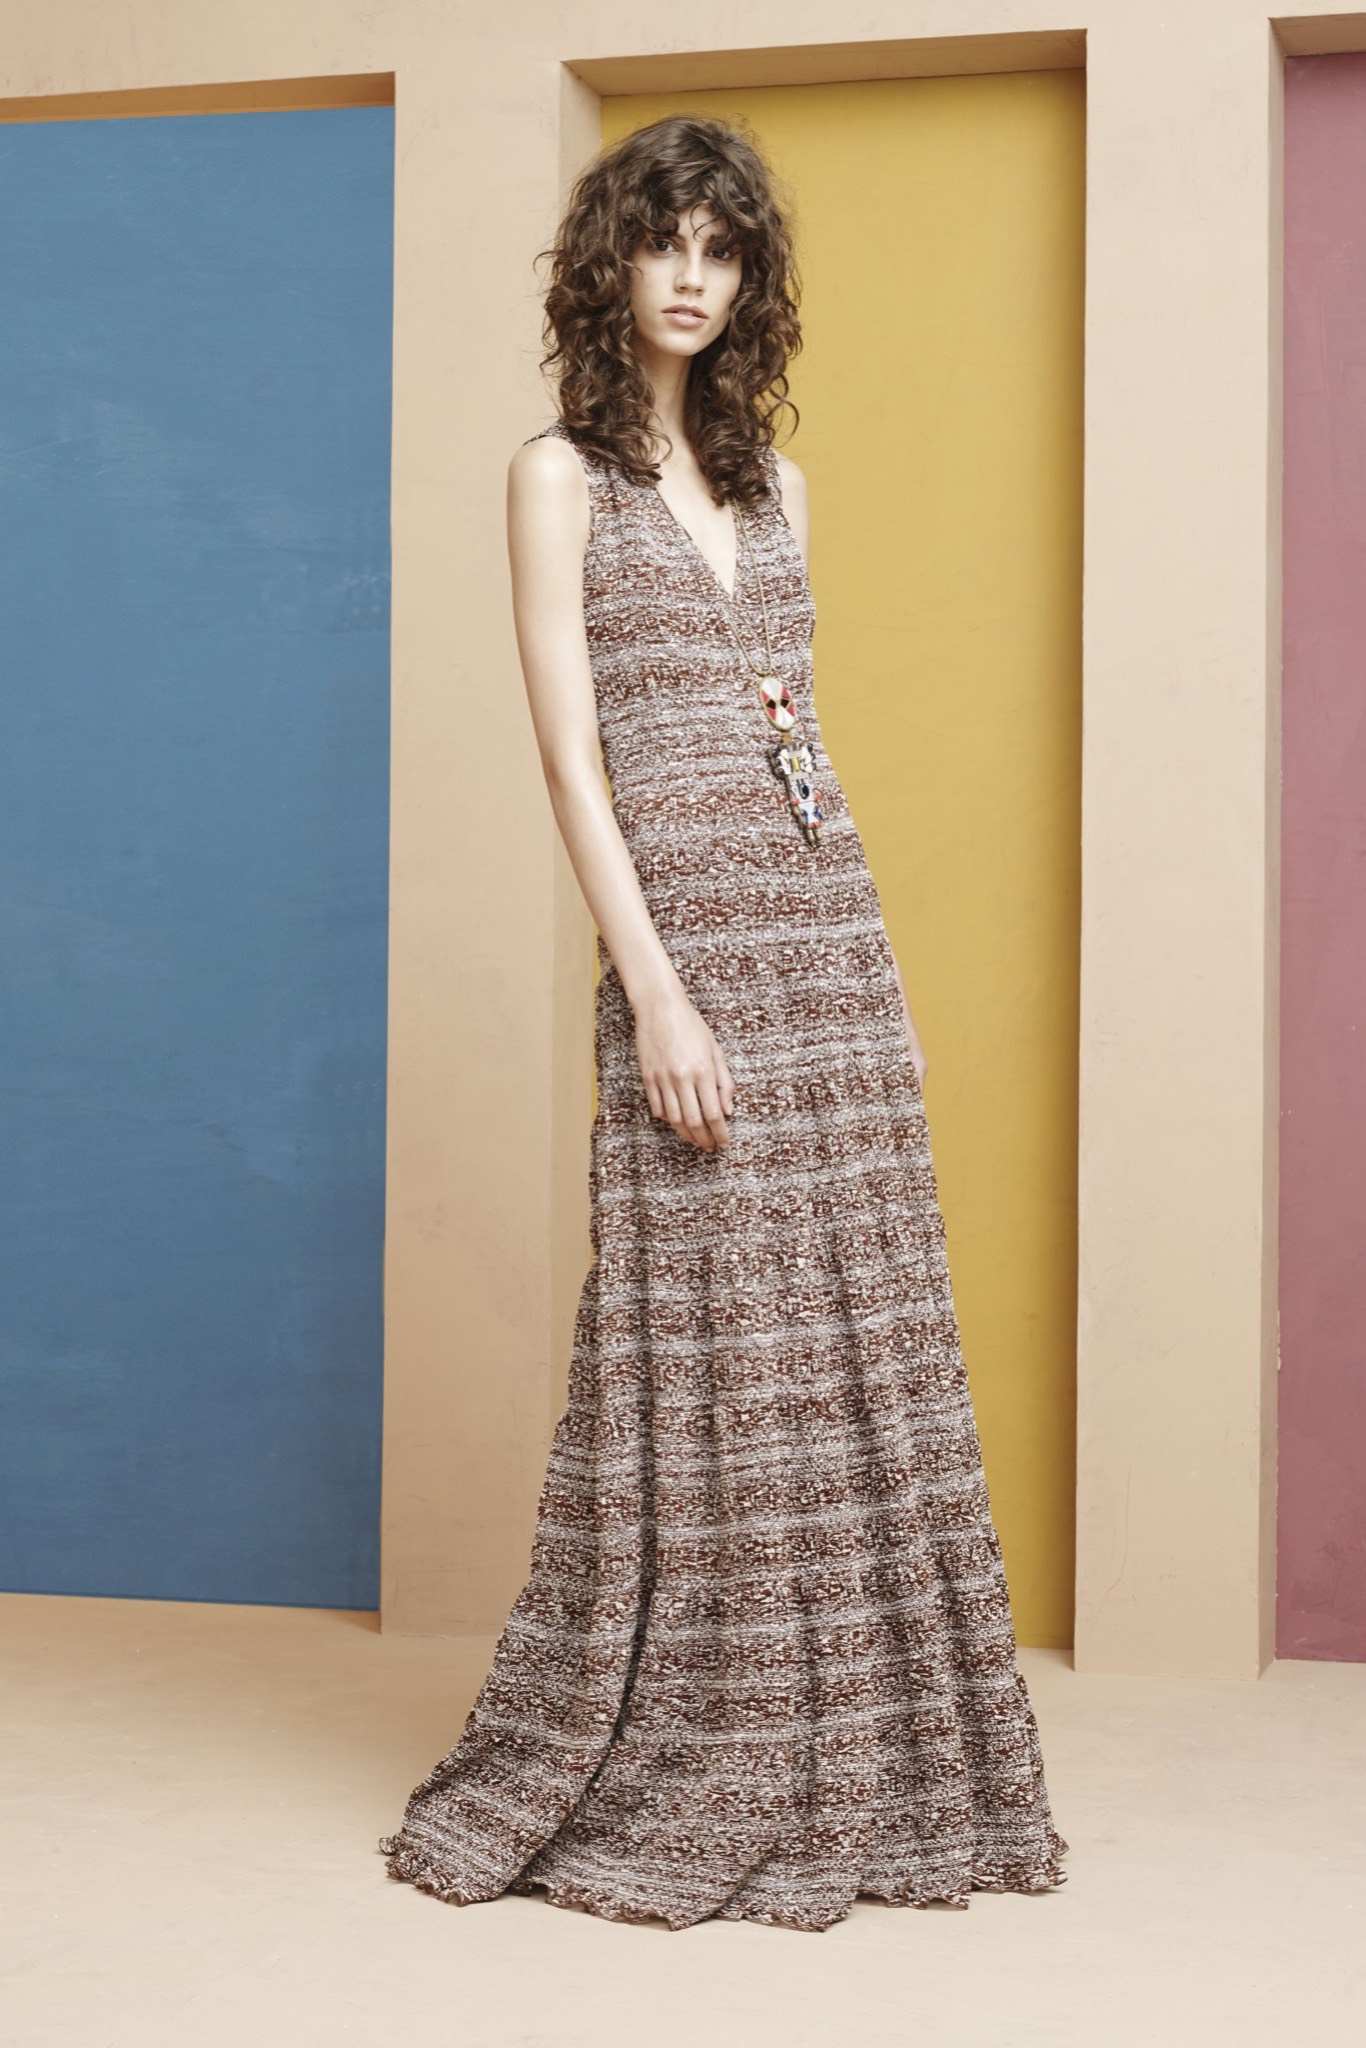 RESORT UPDATE // Von Tory Burch, DKNY bis Wes Gordon ...